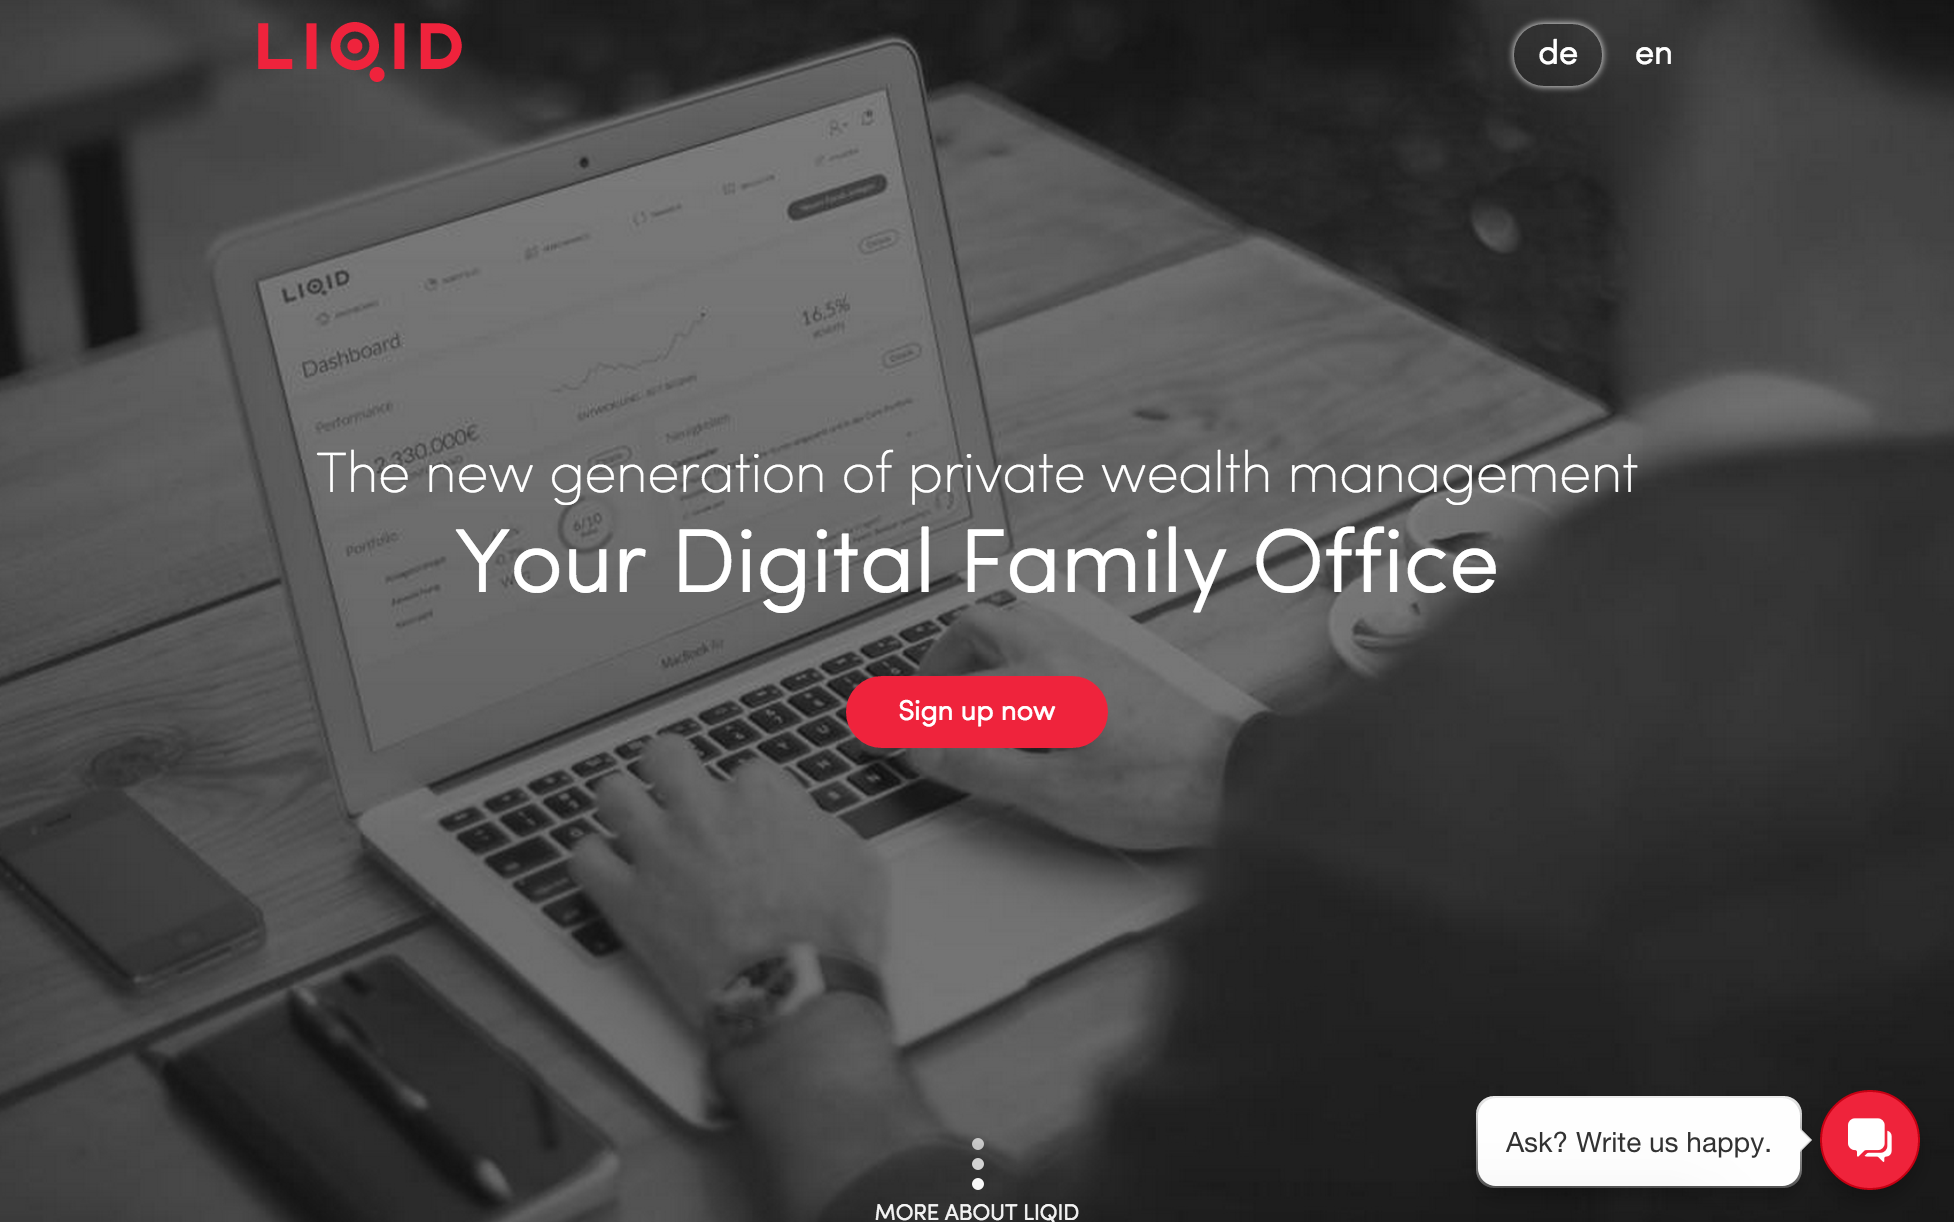 Liqid offers a unique digital access to private asset management.  Our services: Together with one of the oldest and largest independent multi-family offices in Germany, we offer for liquid assets above 100,000 euros a quality, private wealth management and family office services more perspective.